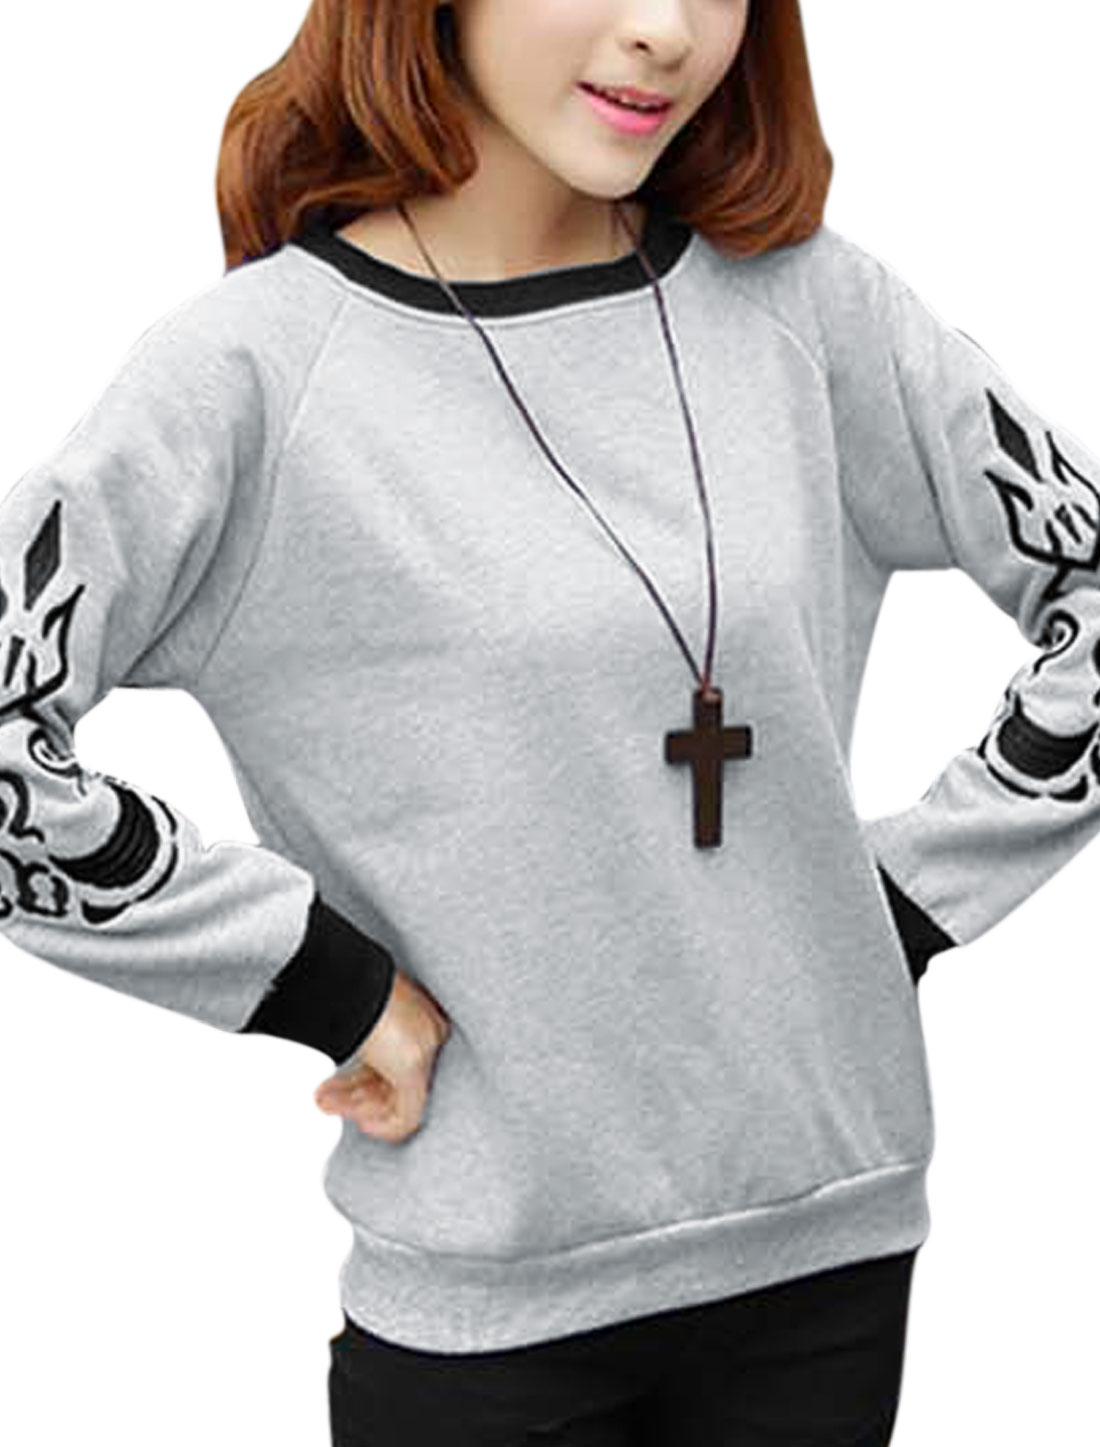 Ladies Crew Neck Casual Sweatshirt Light Gray XS